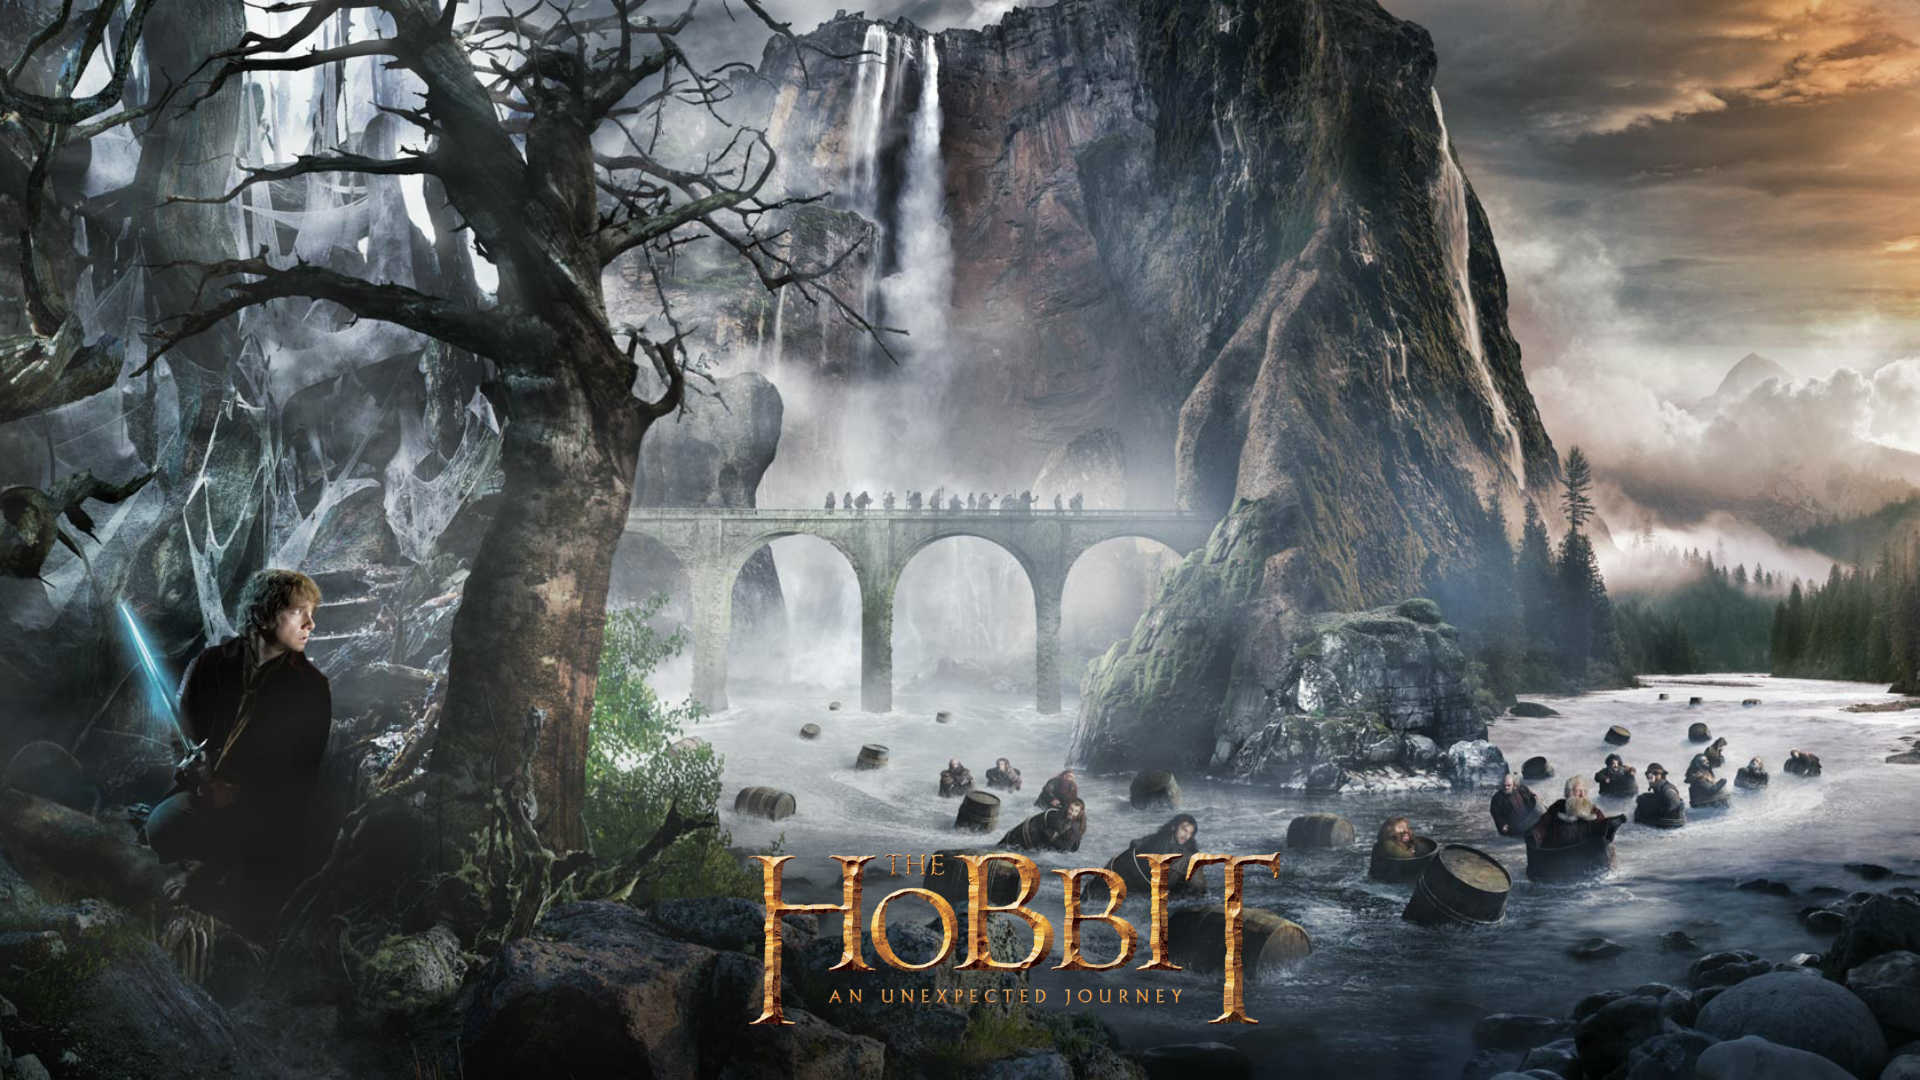 The Hobbit Wallpaper - The Hobbit Wallpaper (33042230) - Fanpop